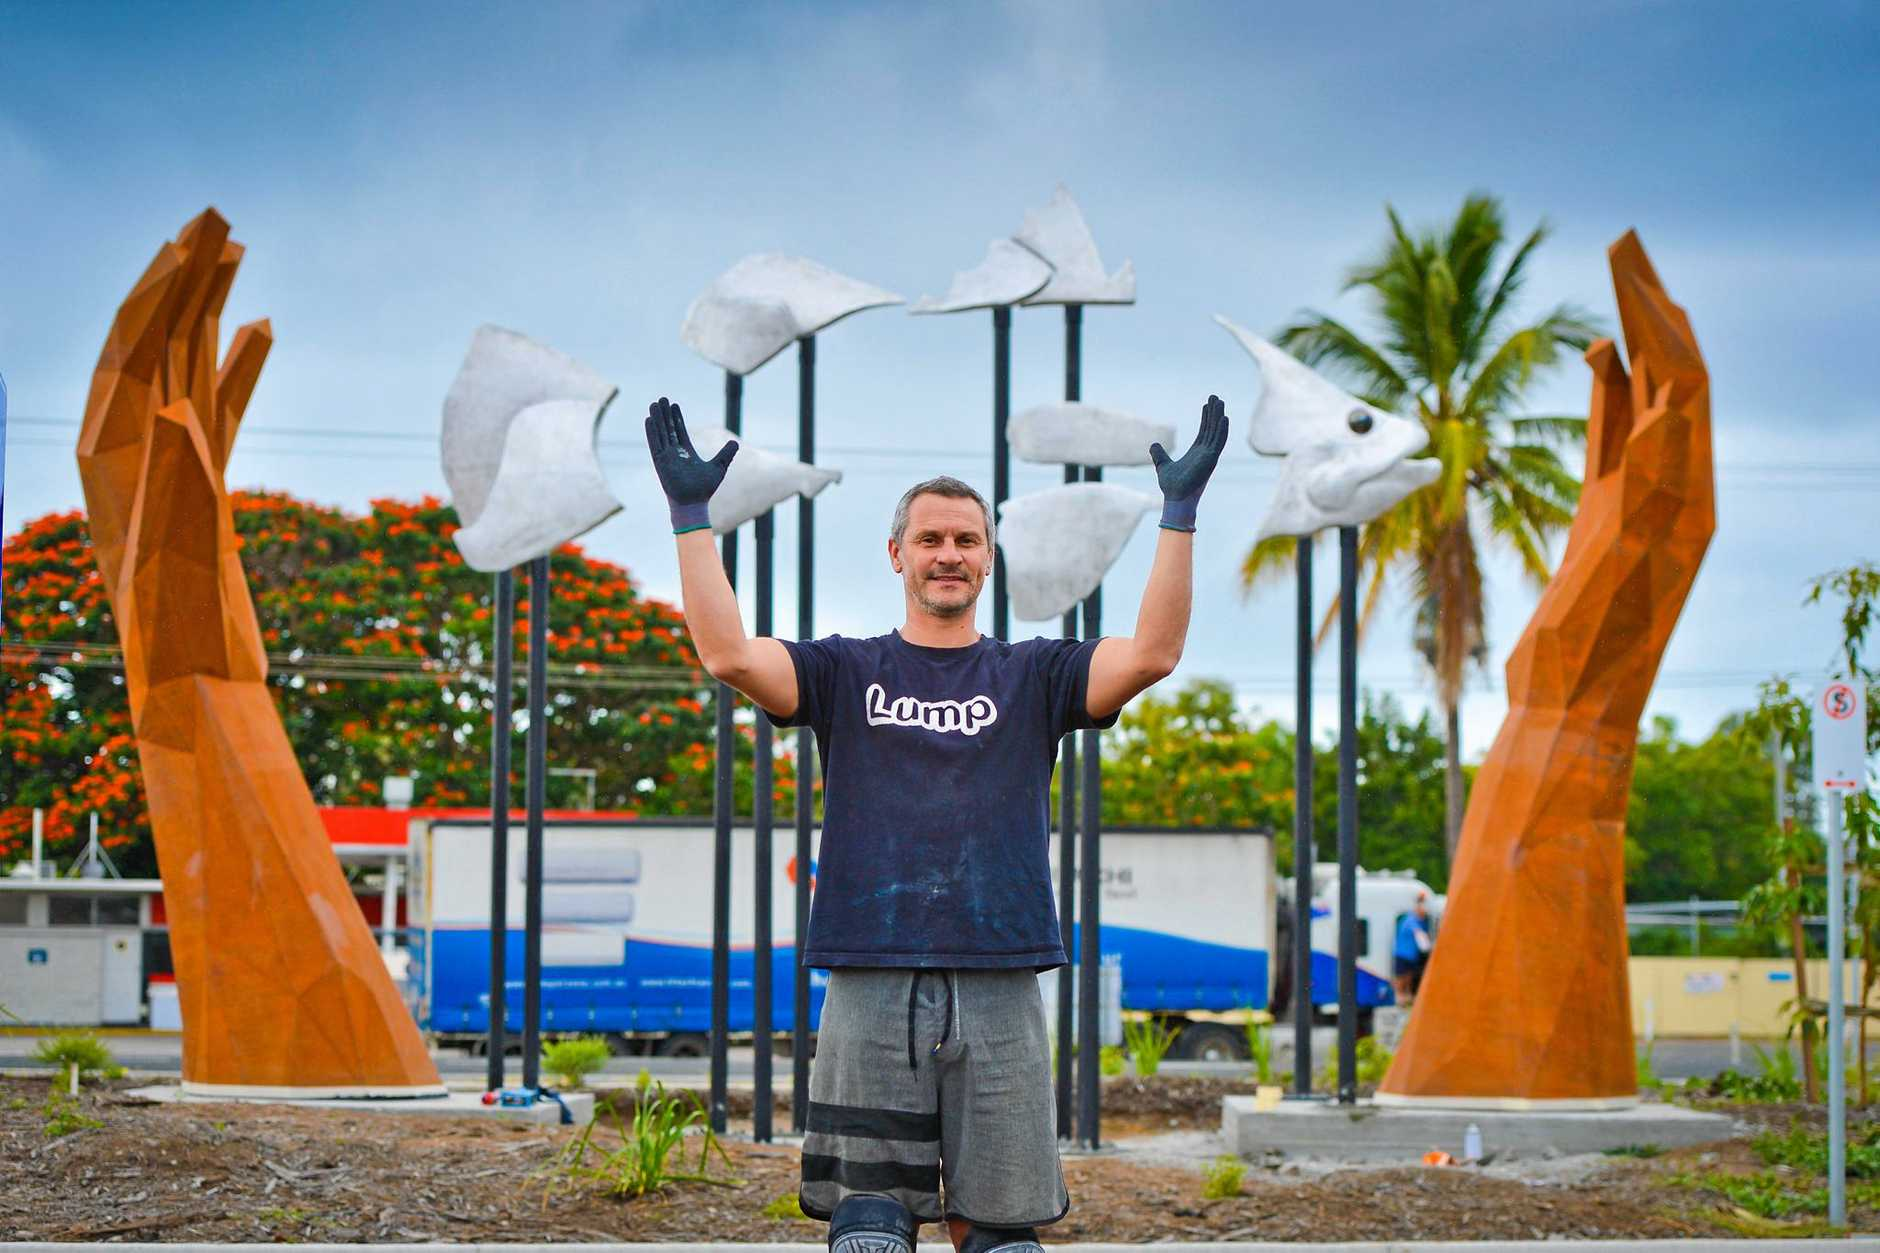 IT WAS THIS BIG: Sculptor Chris Vassallo from Lump Sculpture has spent months working on the new installation in Benaraby.